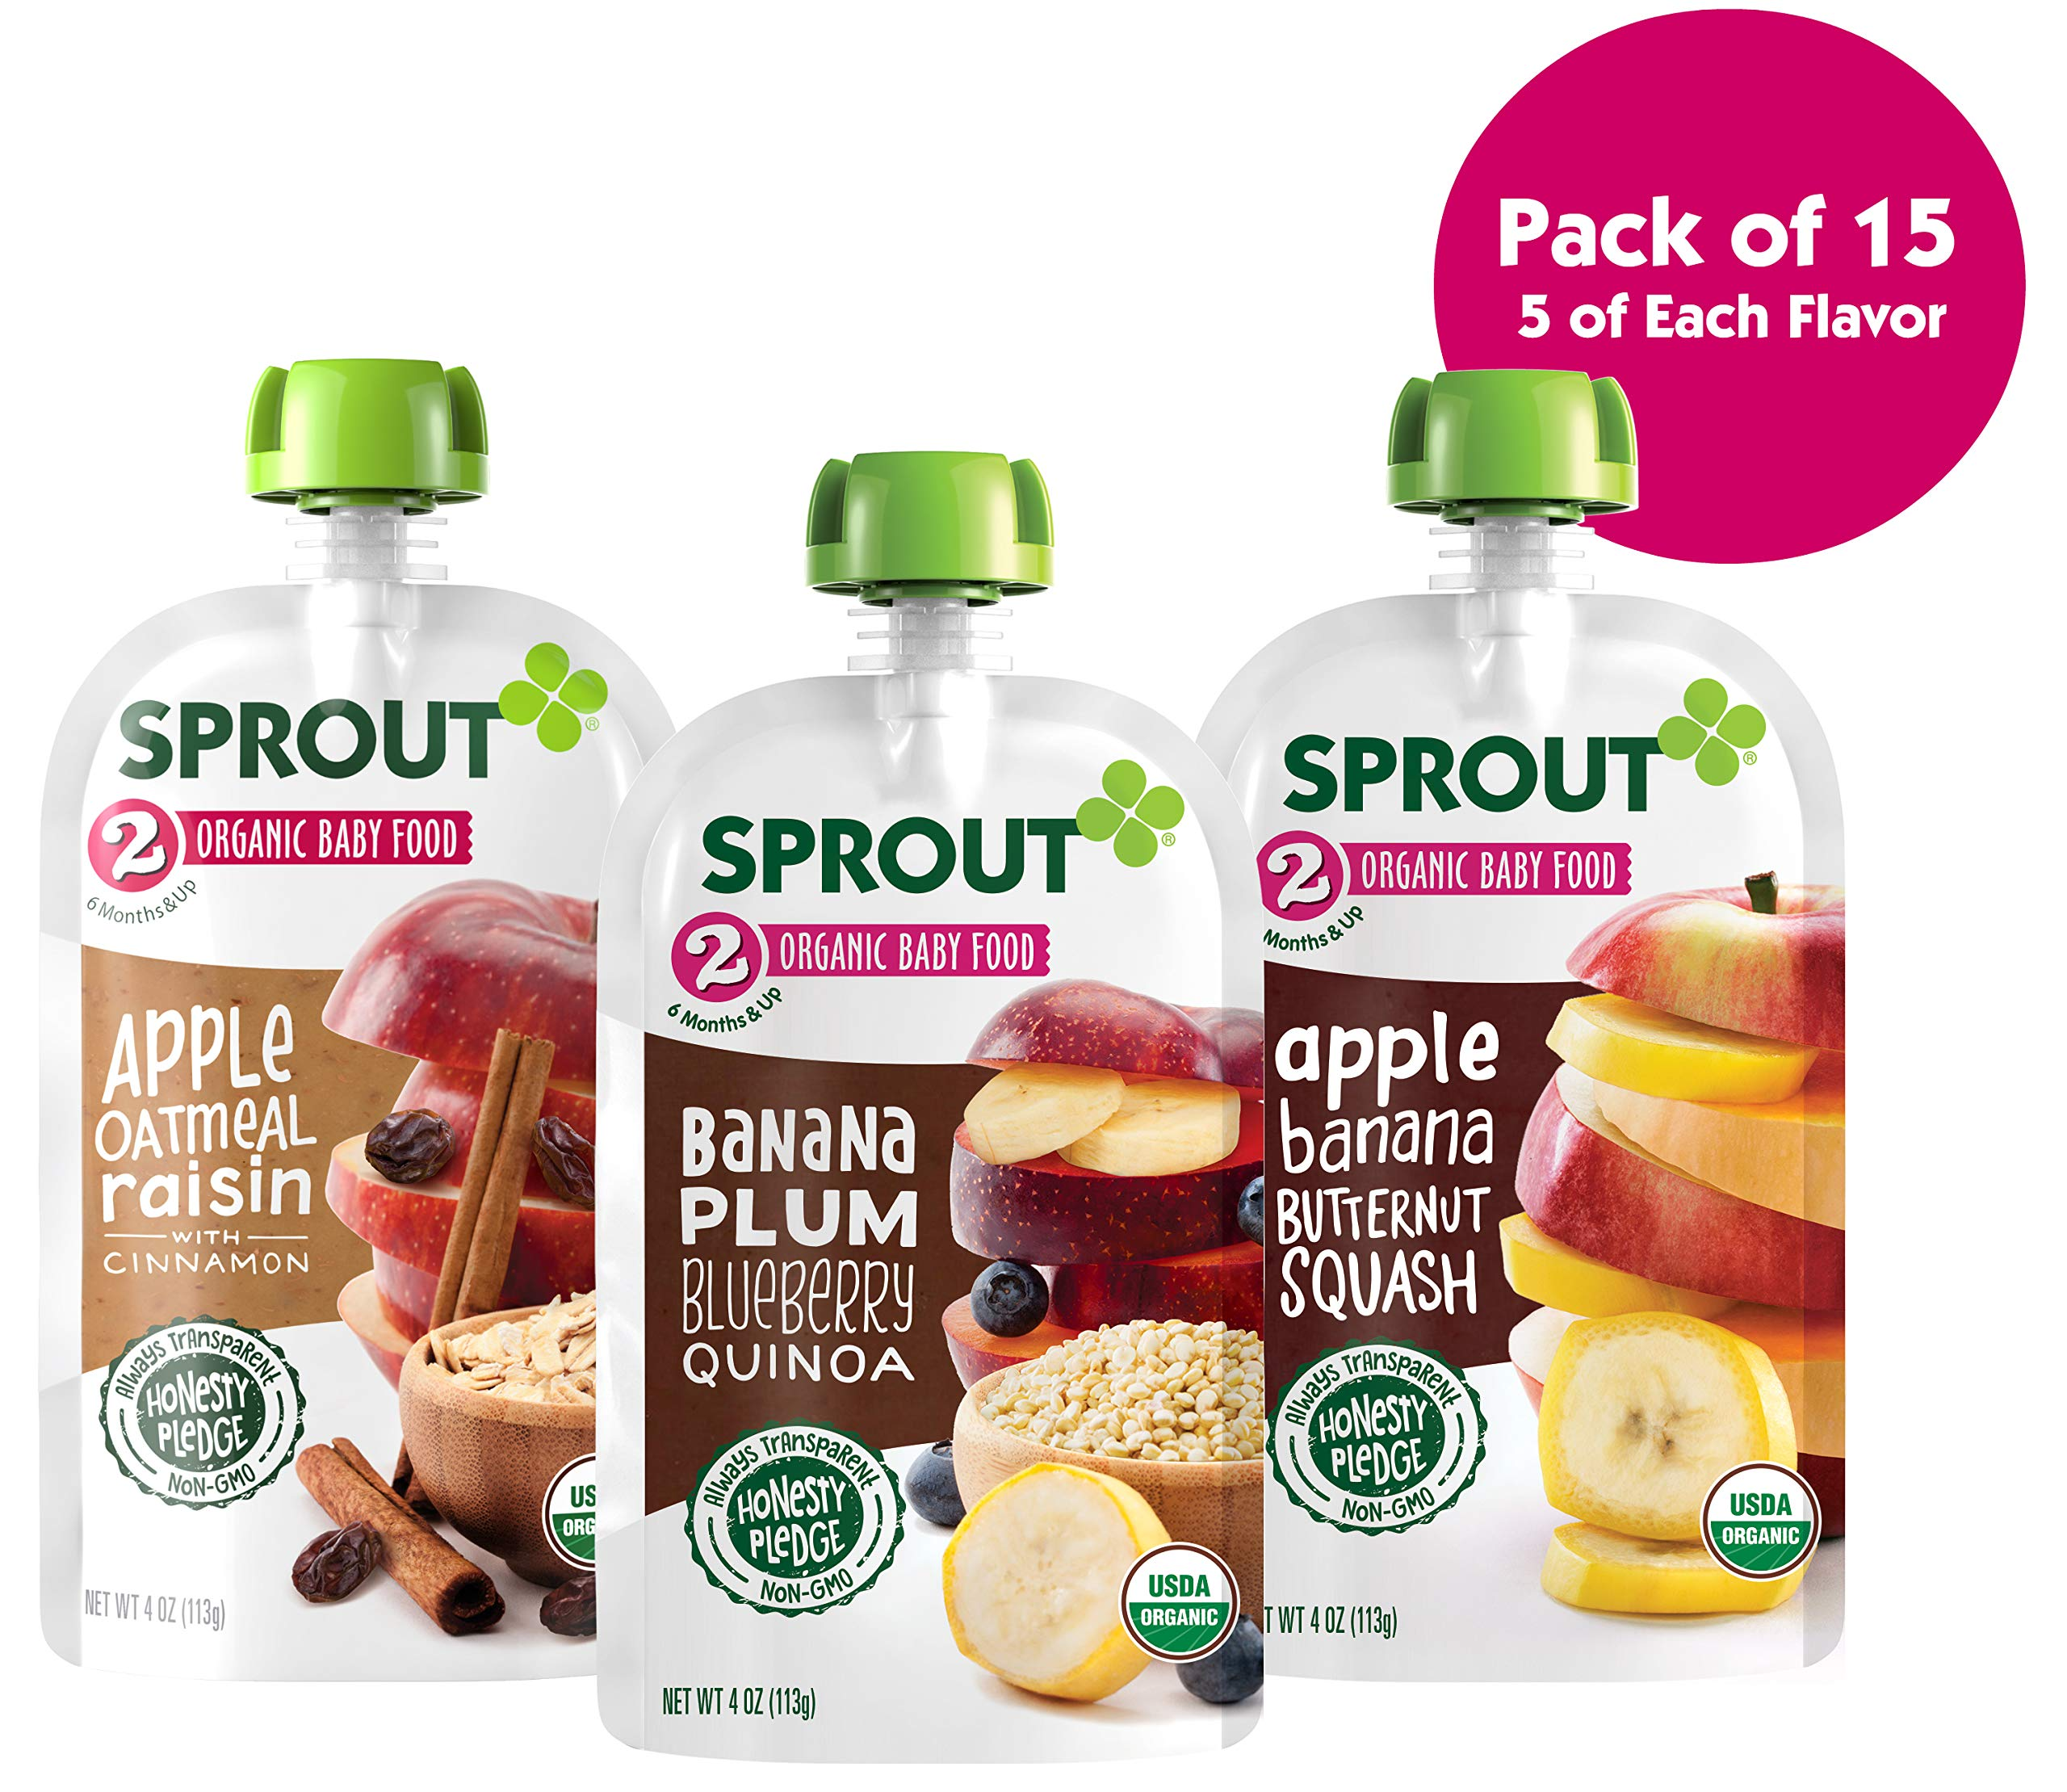 Sprout Organic Stage 2 Baby Food Pouches, Variety Pack, 4 Ounce (Pack of 15) 5 of Each: Apple Oat Raisin w/ Cinnamon, Banana Plum Blueberry Quinoa & Apple Banana Butternut